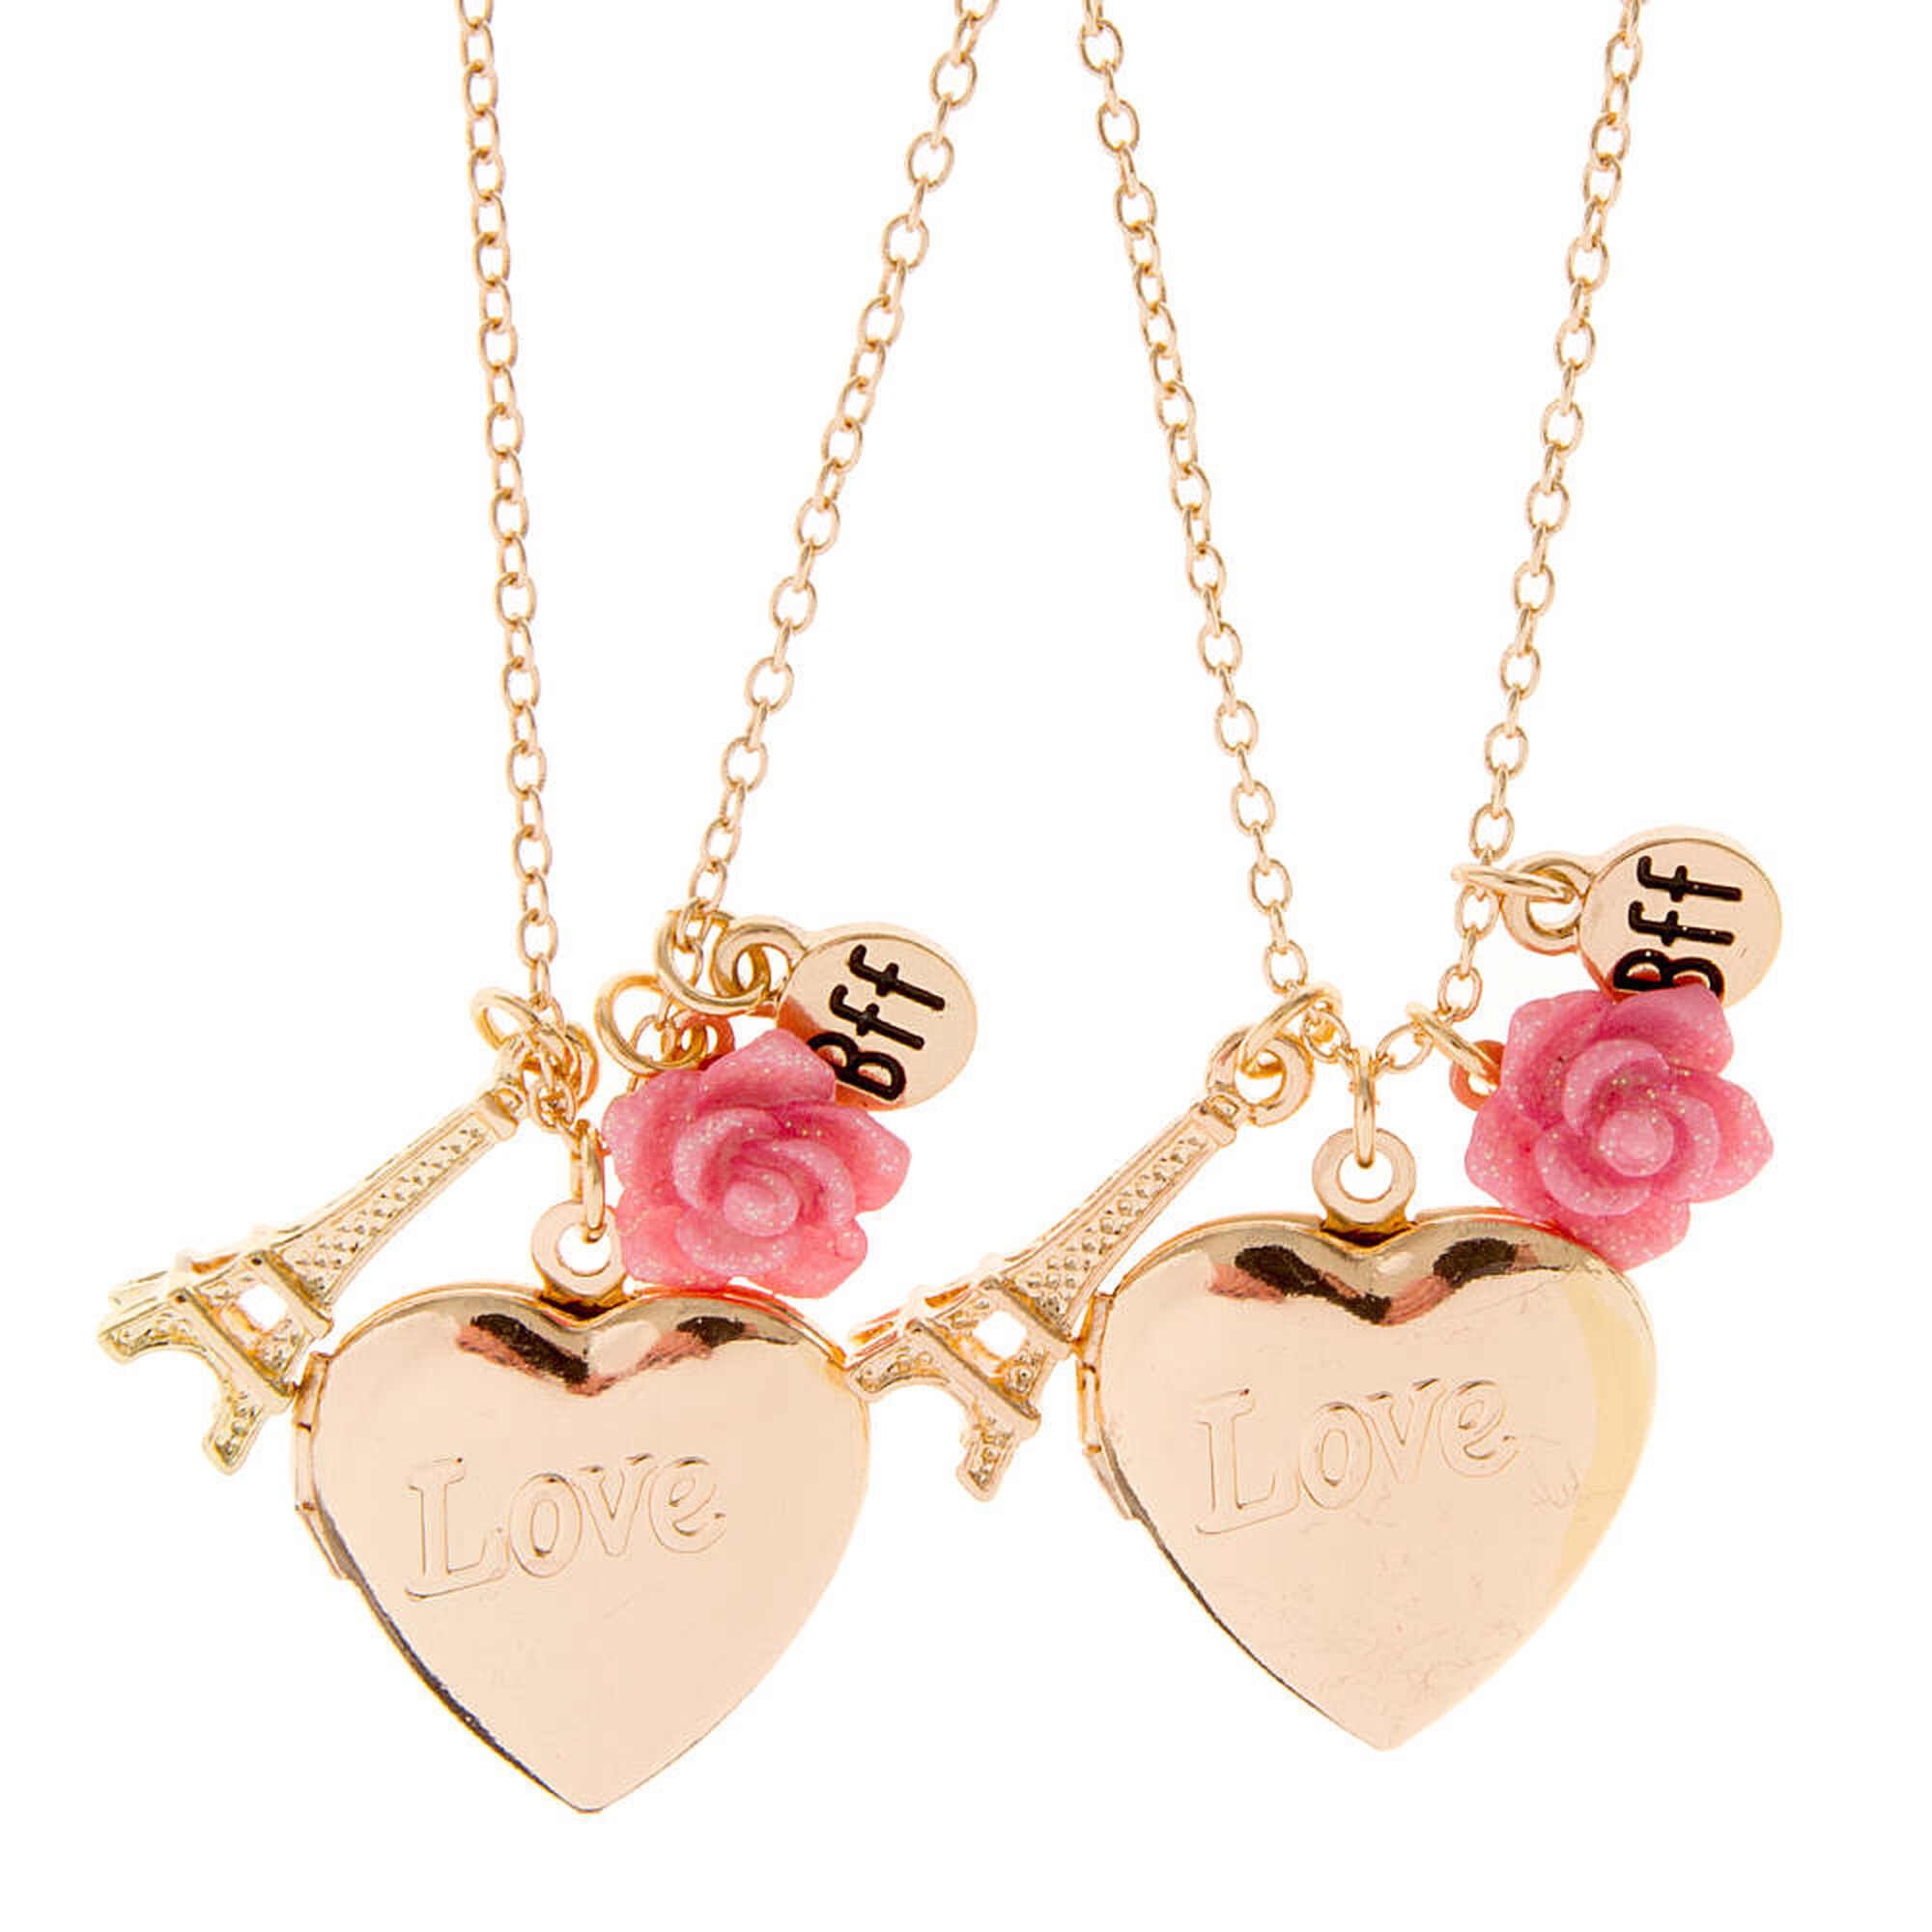 for complete mens color high decor with pricetempting romantic women to necklace home definition jewelry improvement lockets models heart locket inspire gold babies tempting chain rose your